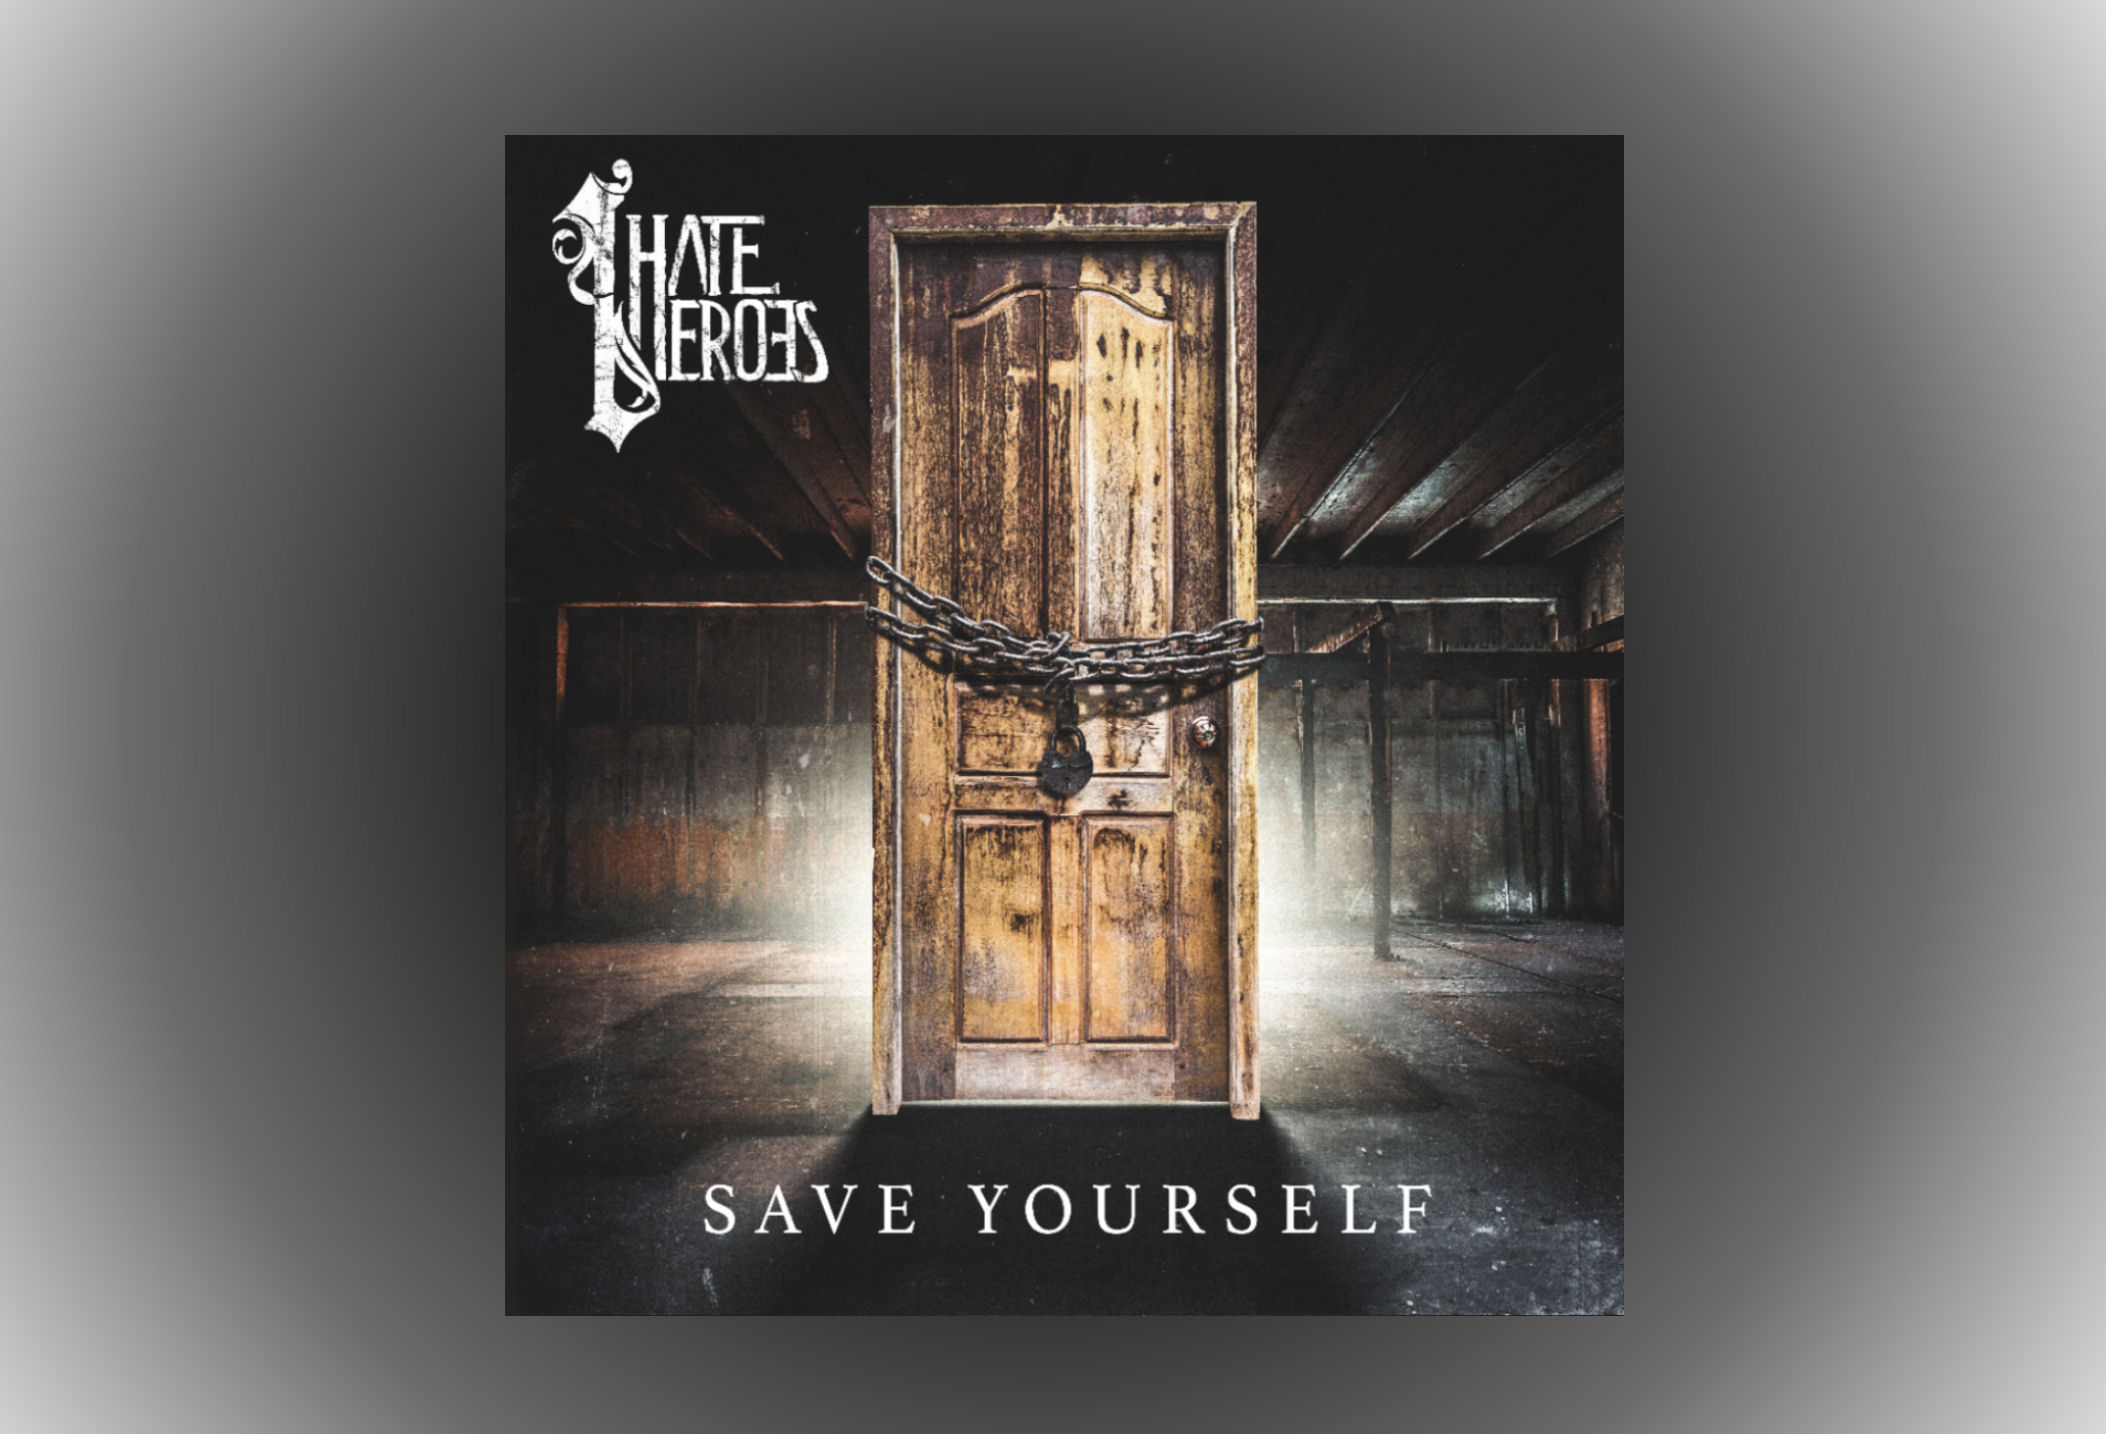 I Hate Heroes Save Yourself review, I Hate Heroes, I Hate Heroes band, I Hate Heroes post-hardcore band, post-hardcore, metalcore, melodic metalcore, sickandsound, Carry The 4 PR, James Lloyd, I Hate Heroes Save Yourself, Listen to I Hate Heroes Save Yourself, Stream I Hate Heroes Save Yourself, Ascolta I Hate Heroes Save Yourself, I Hate Heroes Save Yourself review, I Hate Heroes Save Yourself recensione, I Hate Heroes Save Yourself tracklist, I Hate Heroes lineup, I Hate Heroes logo, post-hardcore bands, post-hardcore albums 2018, Ephraim Francis, Ricky Nachurski, Matt Cellini, Nicholas Nachurski, Avarice EP, I Hate Heroes Rebirth, I Hate Heroes Blank Space, If Life Were a Book, I'd Skip This Chapter EP, I Hate Heroes My Songs Know What You Did In The Dark, I Hate Heroes Now or Never, I Hate Heroes Alive official video, Watch I Hate Heroes Alive, Here's to You, Stand Tall, Silver Linings, Alive, Ghost in the Mirror, Drowning, Remember Me, Light the Way, The Battle, If Looks Could Kill, Sing Me to Sleep, ihateheroesmusic, IHateHeroesOfficial, post-hardcore breakdown